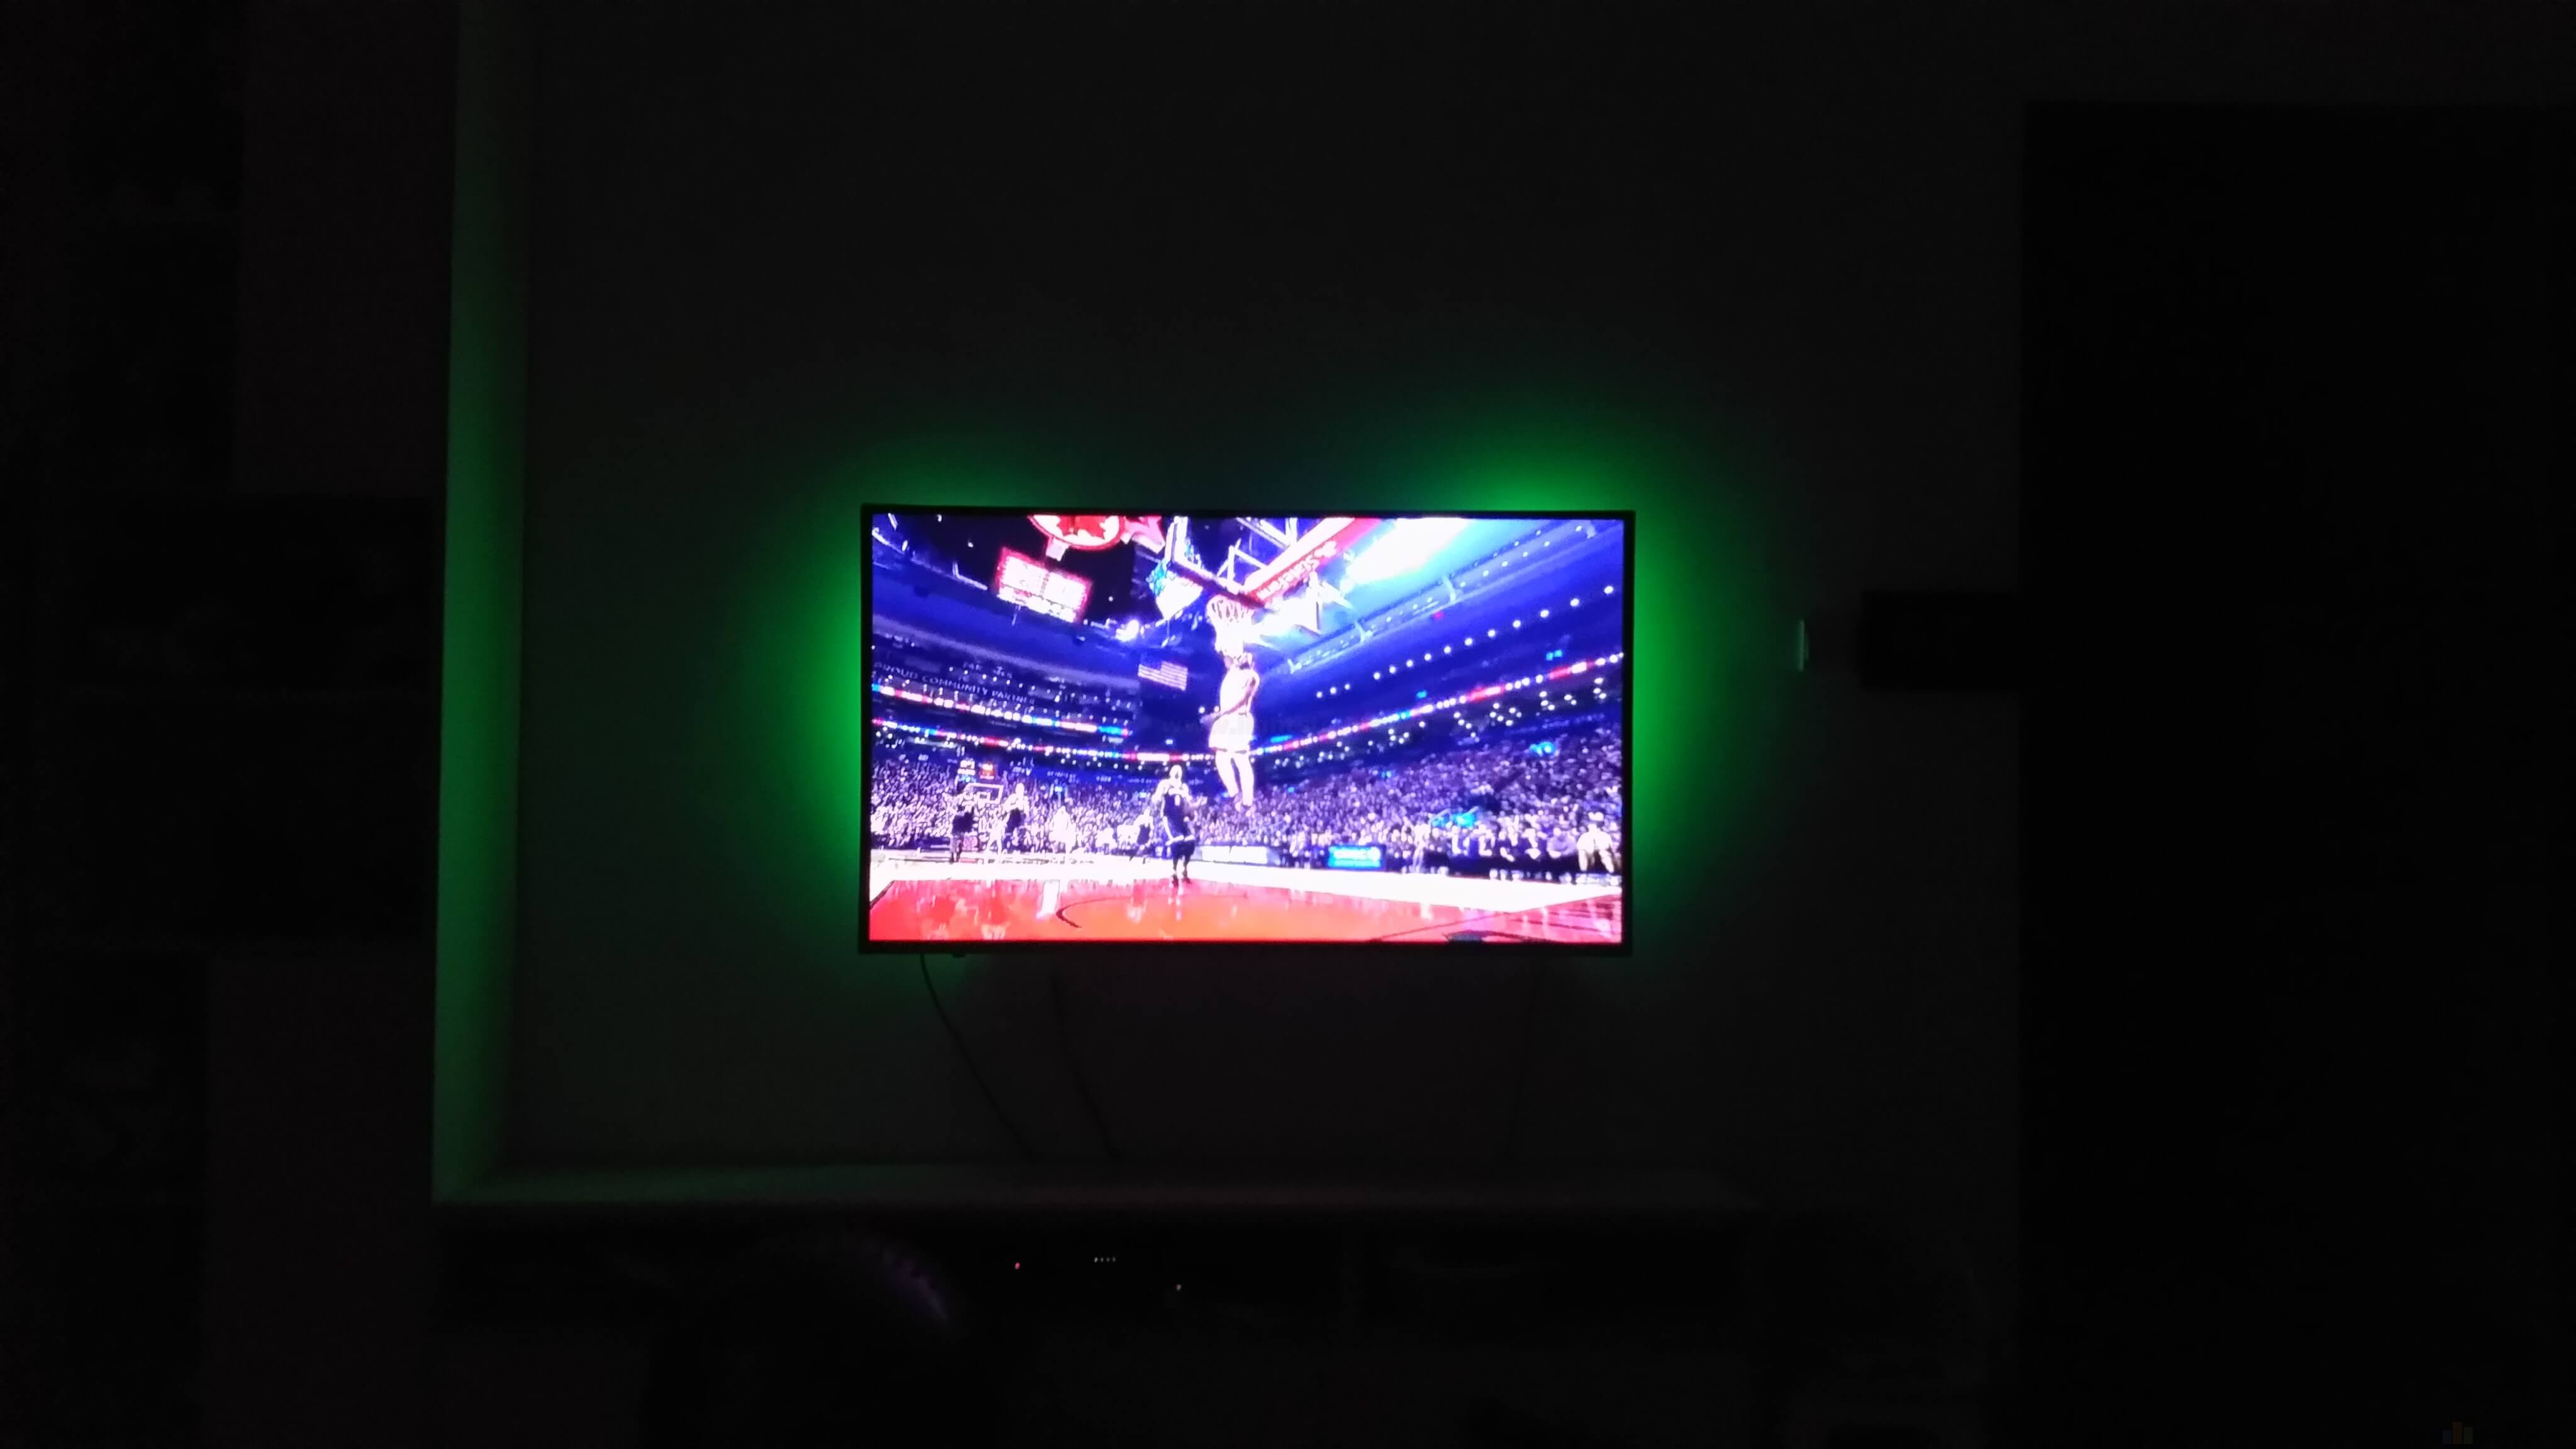 LED STRIP LIGHT FOR TV